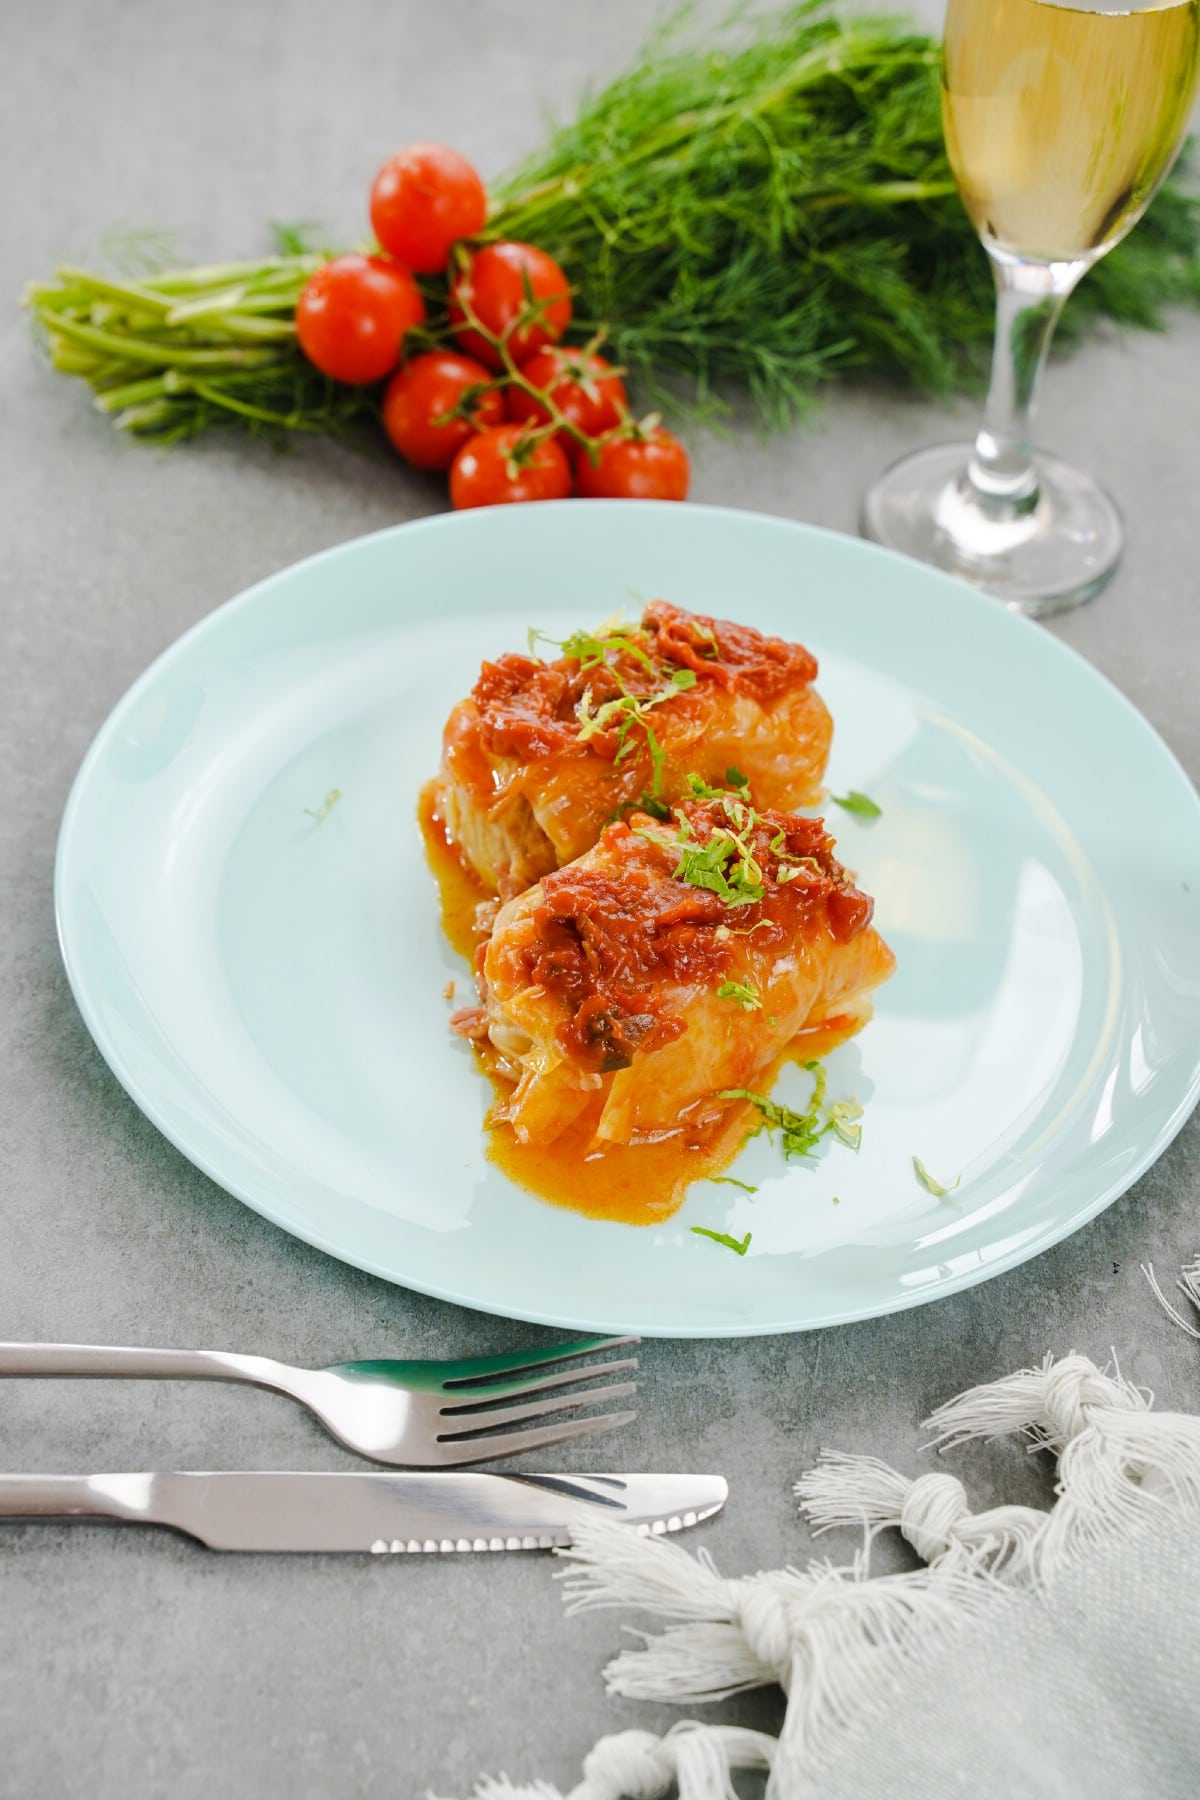 White plate of cabbage rolls by fresh tomatoes and wine glass